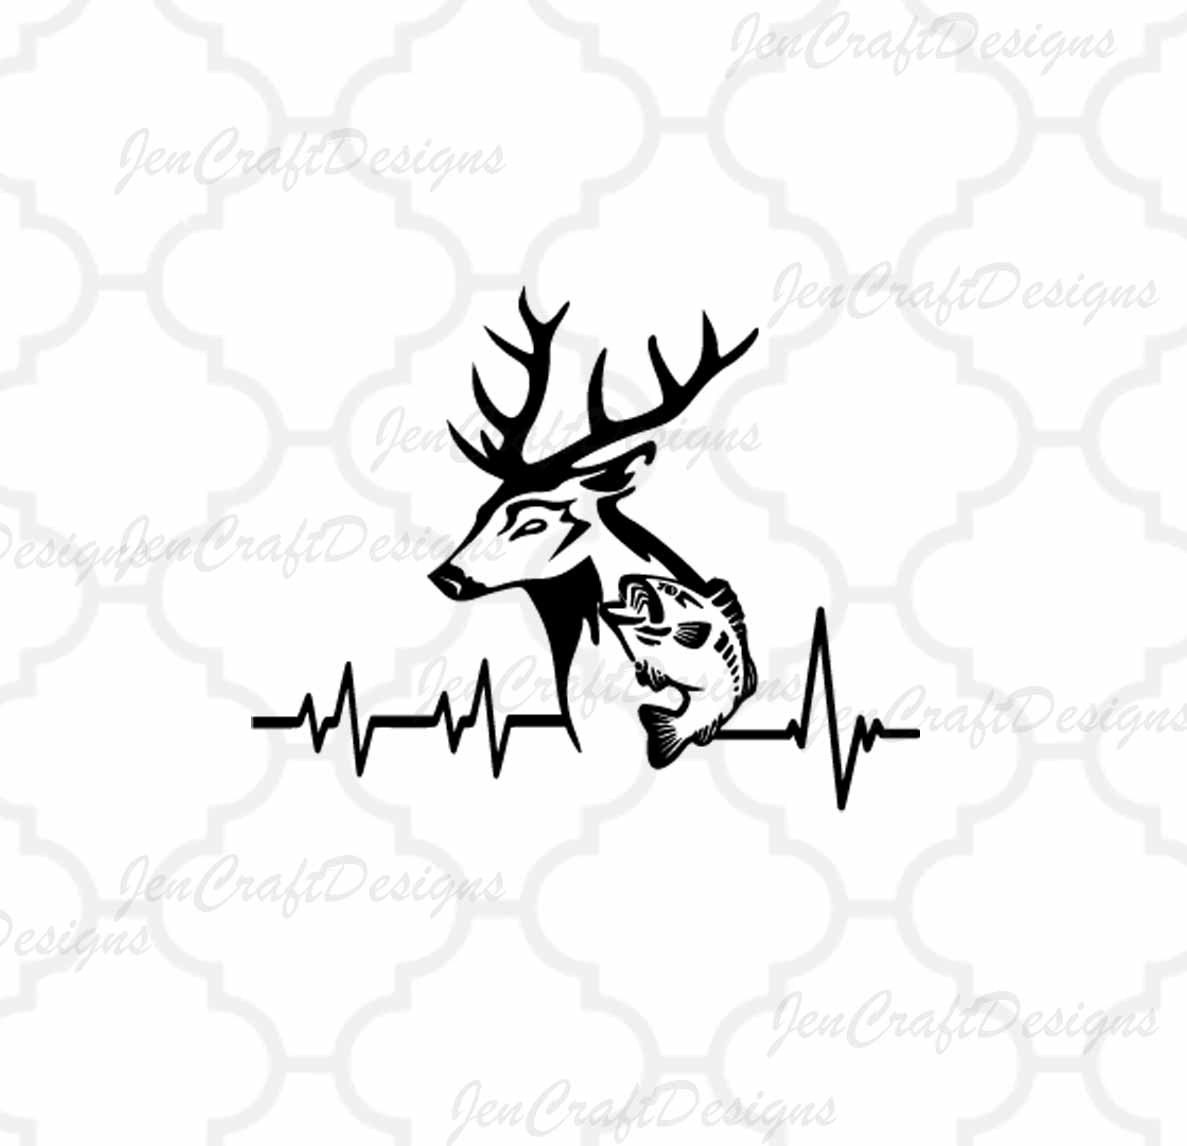 400987657216 additionally Family Car Stickers besides B003NNAOA2 furthermore Deer Fish Svg Cutting File Hunting Svg furthermore Deer Collection Vector Silhouette Gm522602759 50885558. on deer antler silhouette clip art